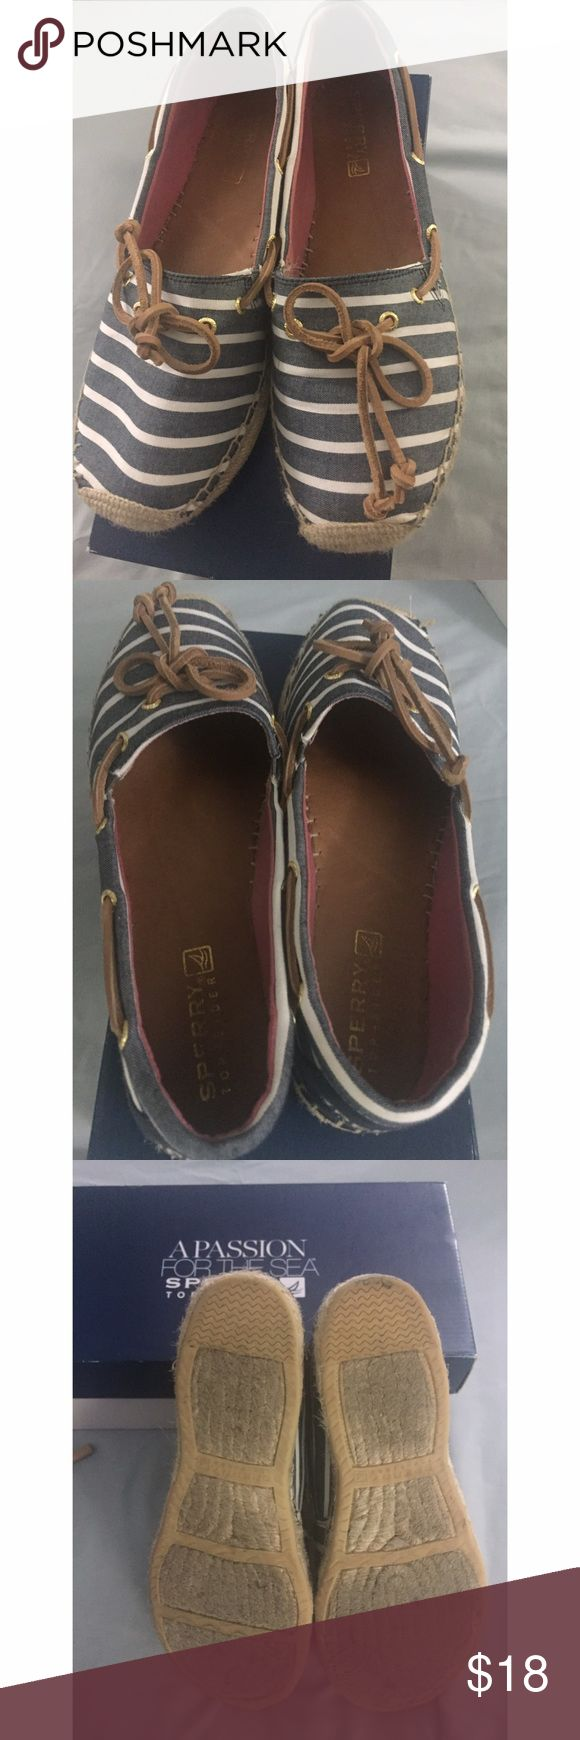 Sperry Espadrilles blue and white flats Size 10 Sperry Top-Sider espadrilles blue and white fabric. Great condition. Sperry Shoes Espadrilles